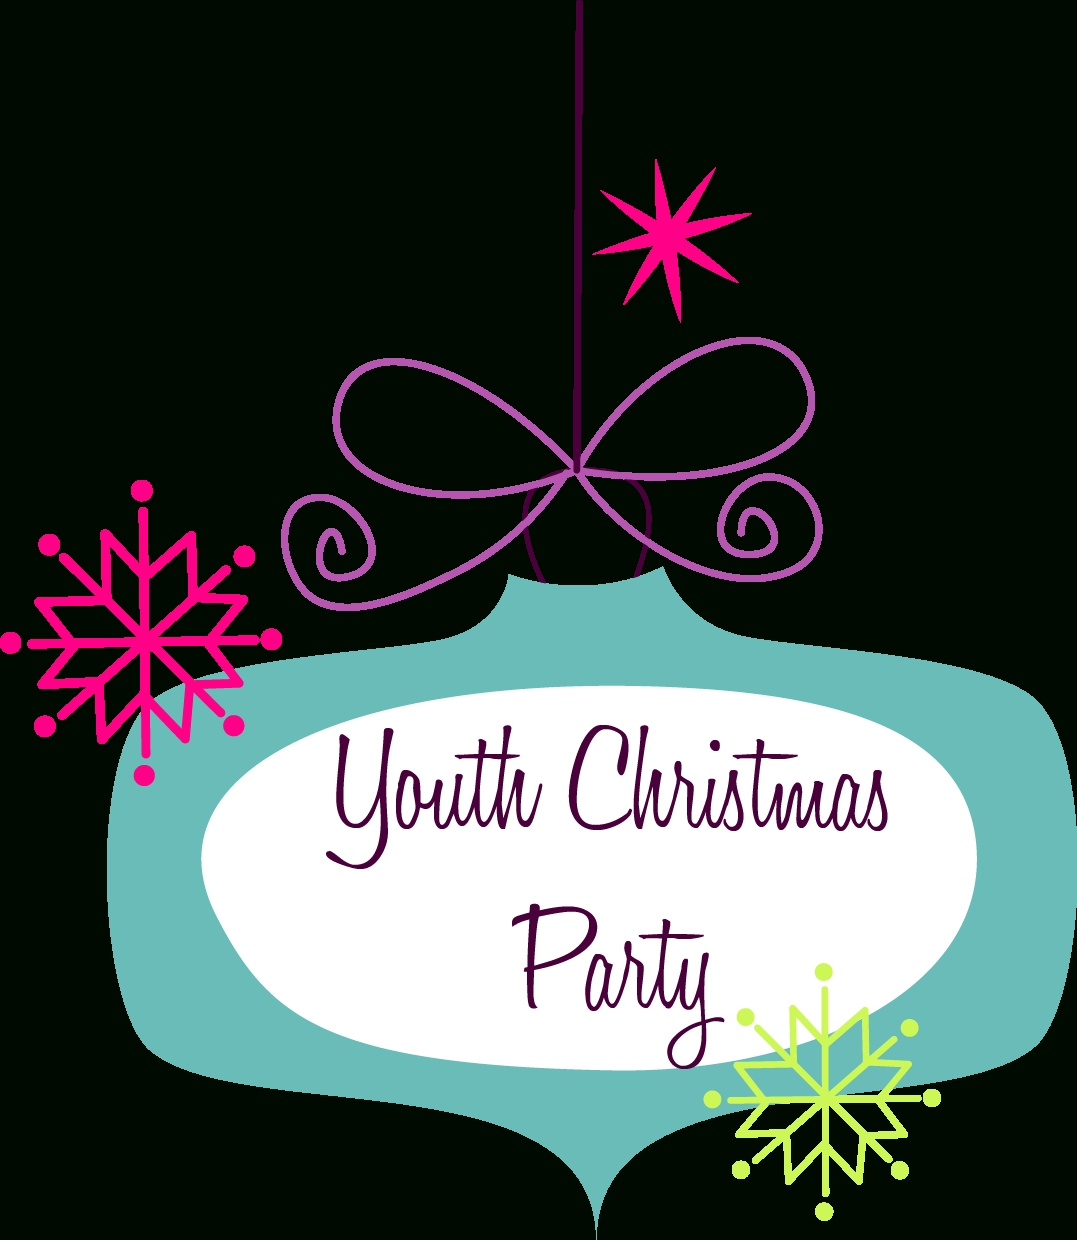 christmas ideas for youth at church party: relief society christmas